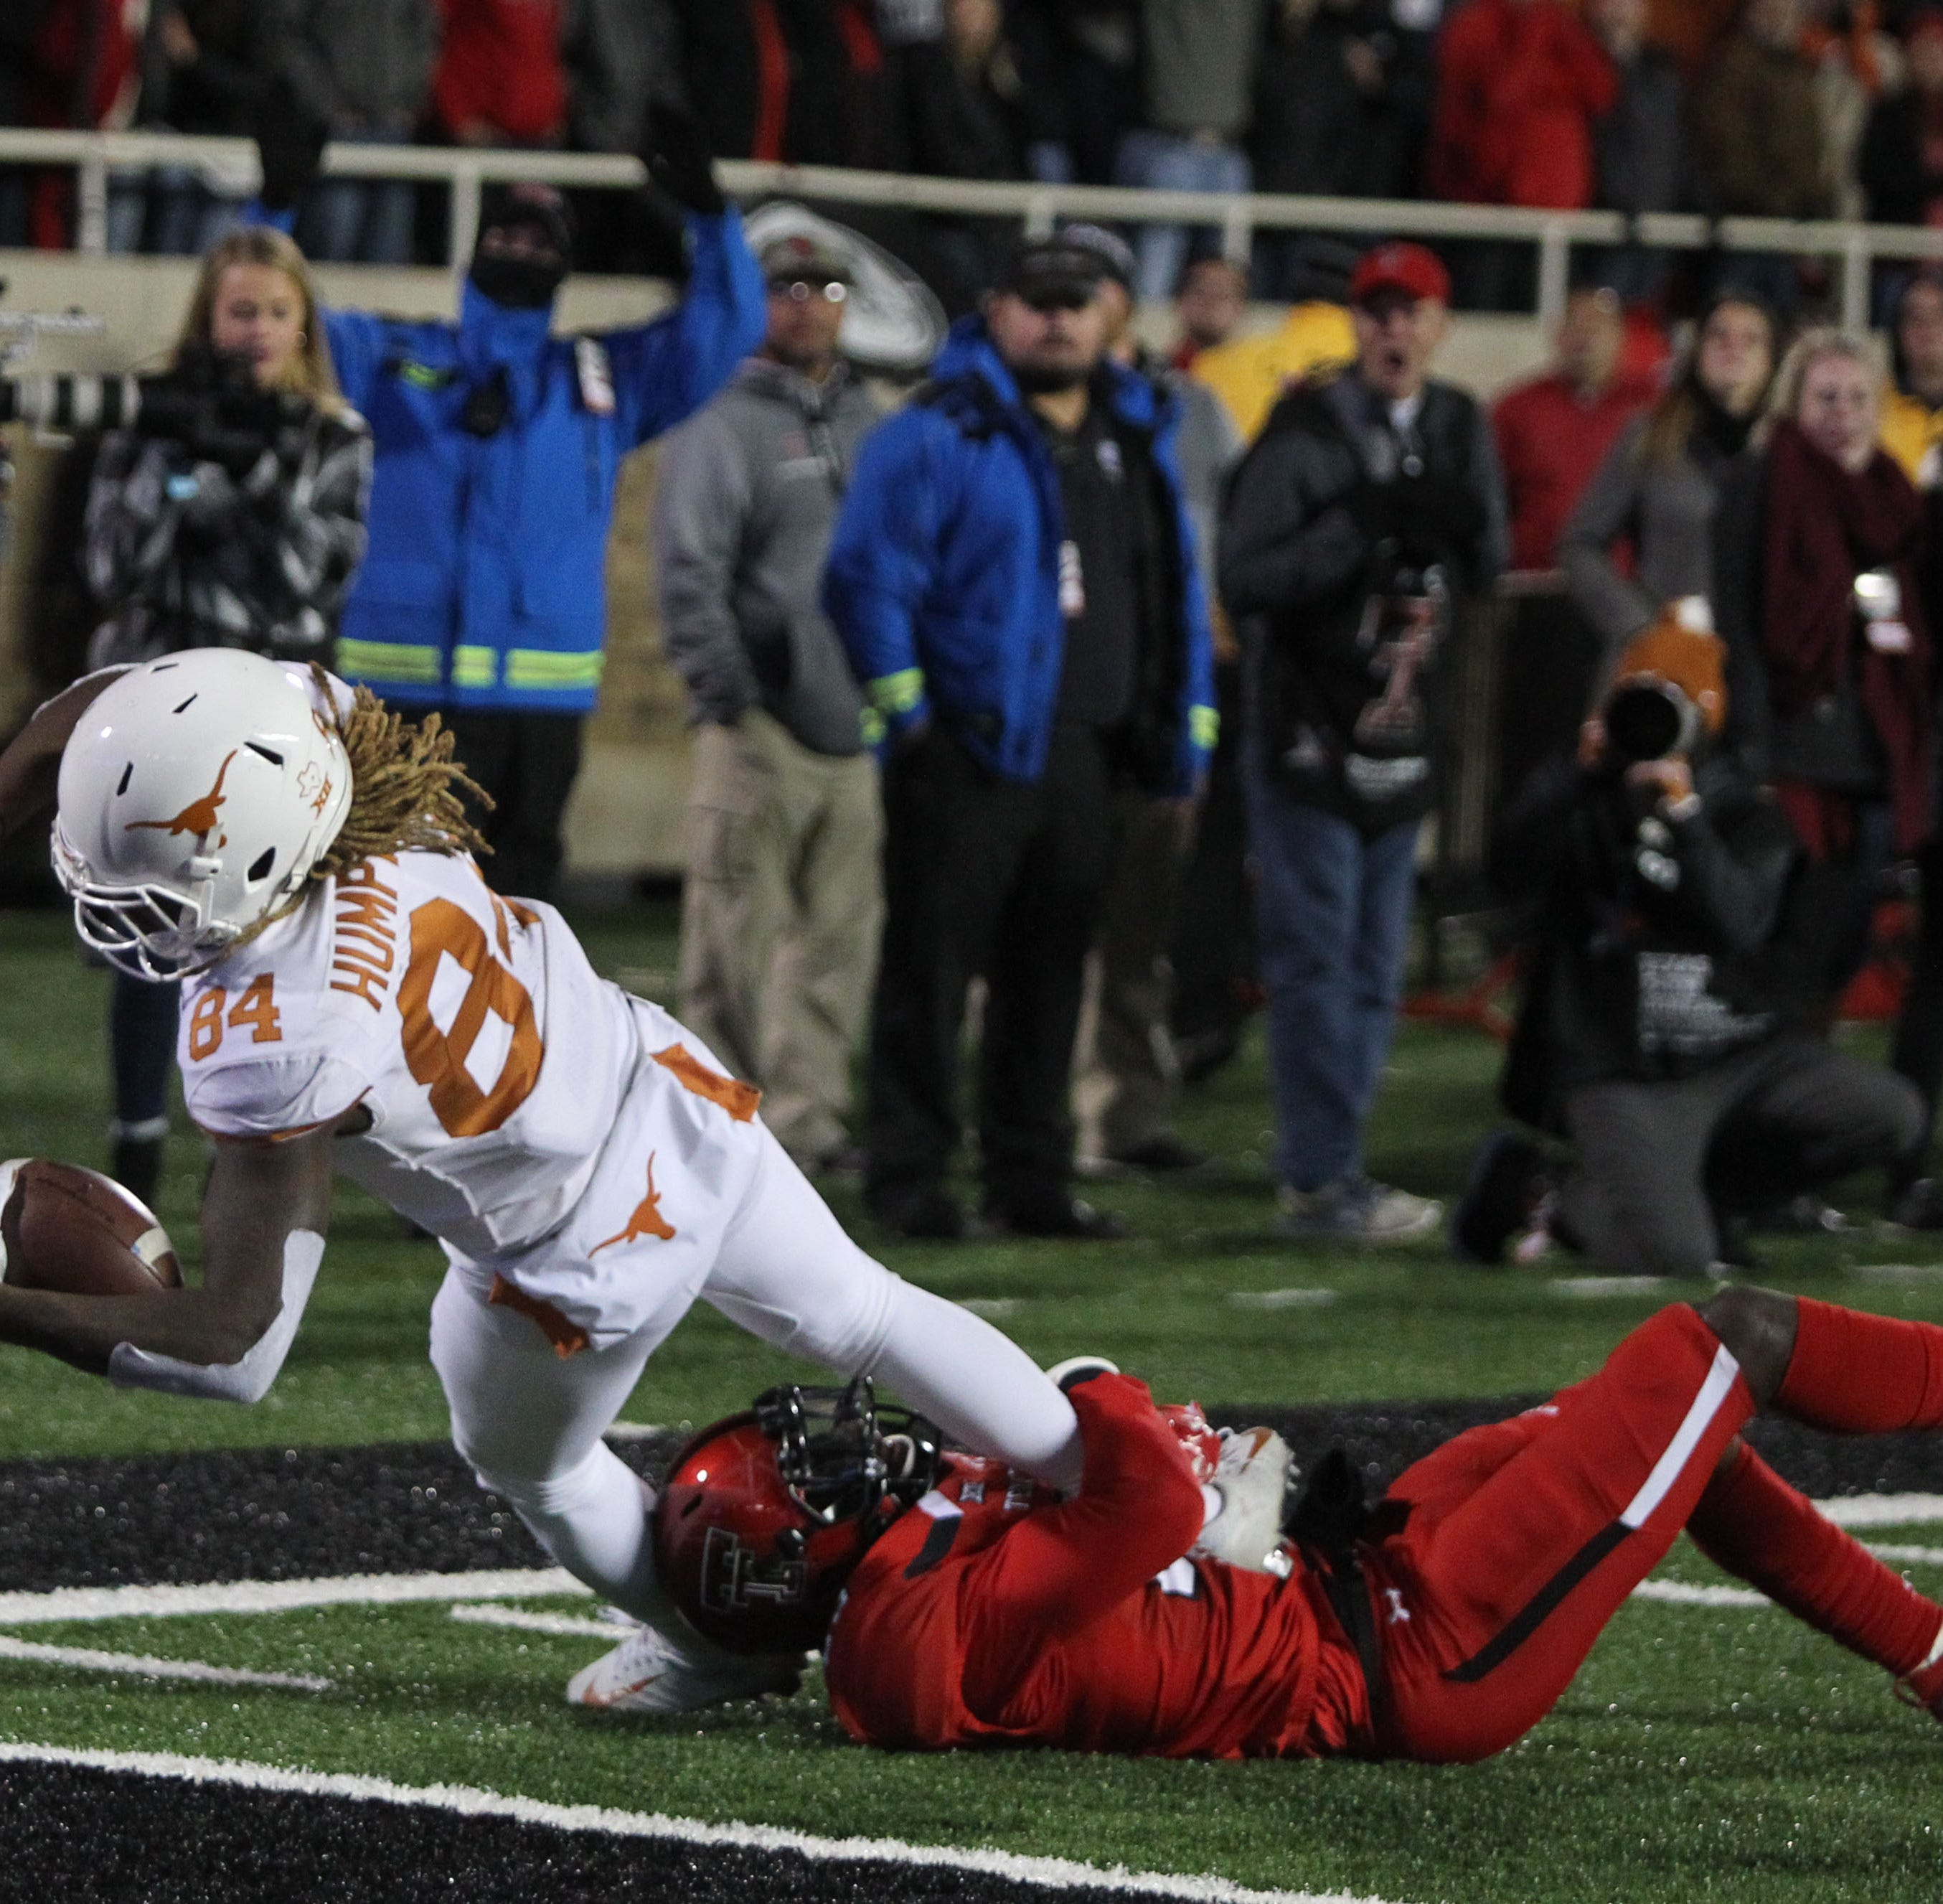 Iowa State vs. Texas on Longhorn Network: Game time, where to stream online